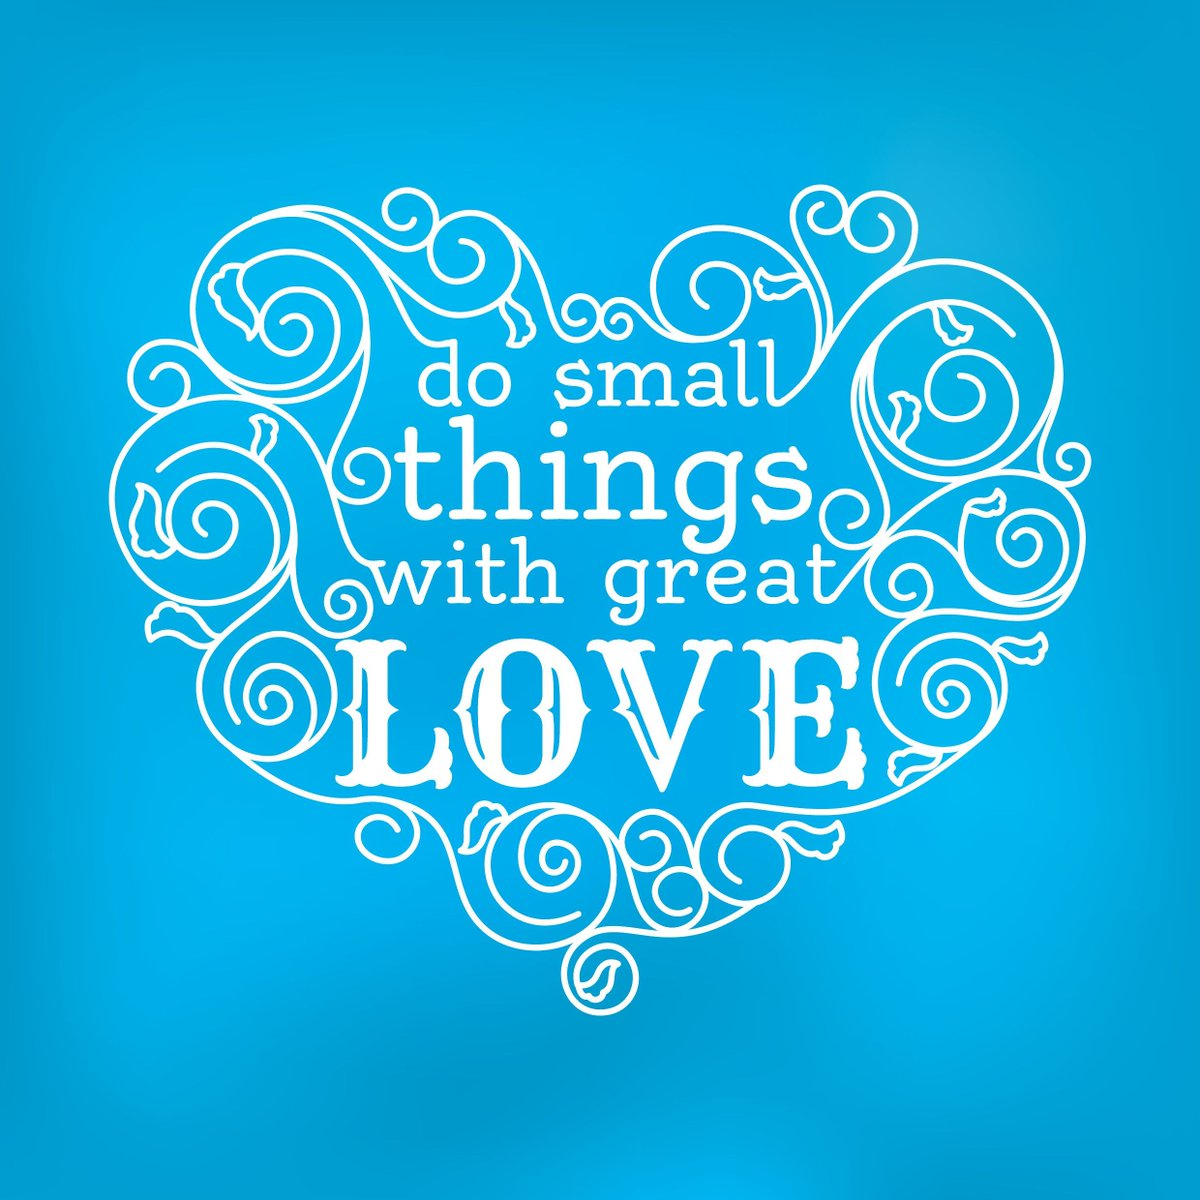 Do small things with great love! * * * #writeforyouparkcity #contentwriter #writingtips #socialmediaguru #inspirationals #inspirational_quotes #inspirationalquotesoftheday #inspirationalpics #inspirationallife #inspirationalquotesforwomen #inspirationalquotesoftheeverday<br>http://pic.twitter.com/wKQ0OmIvbo